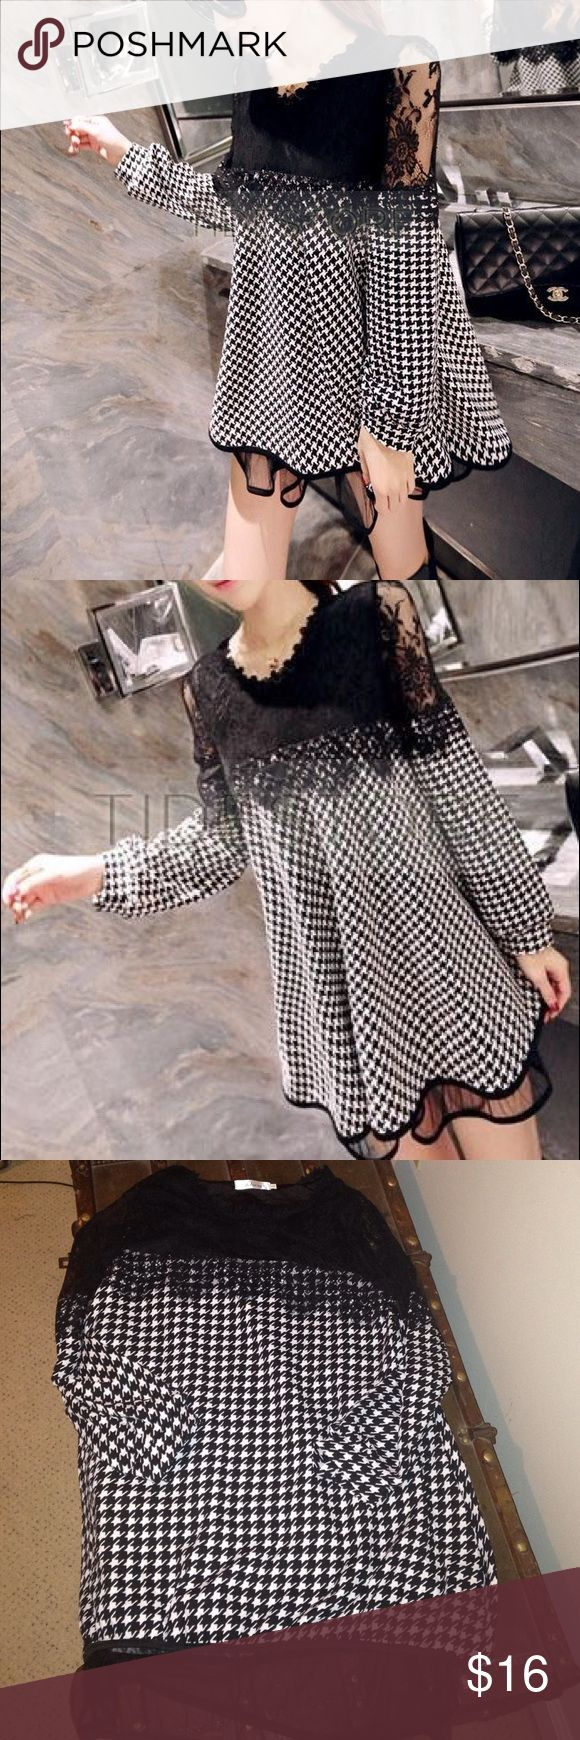 Lace Houndstooth Dress. 2 layers Women's Lace Houndstooth Dress Long Sleeve Lace Plaid Dress. New without tags. Size Large. Smoke and pet free home. Dresses